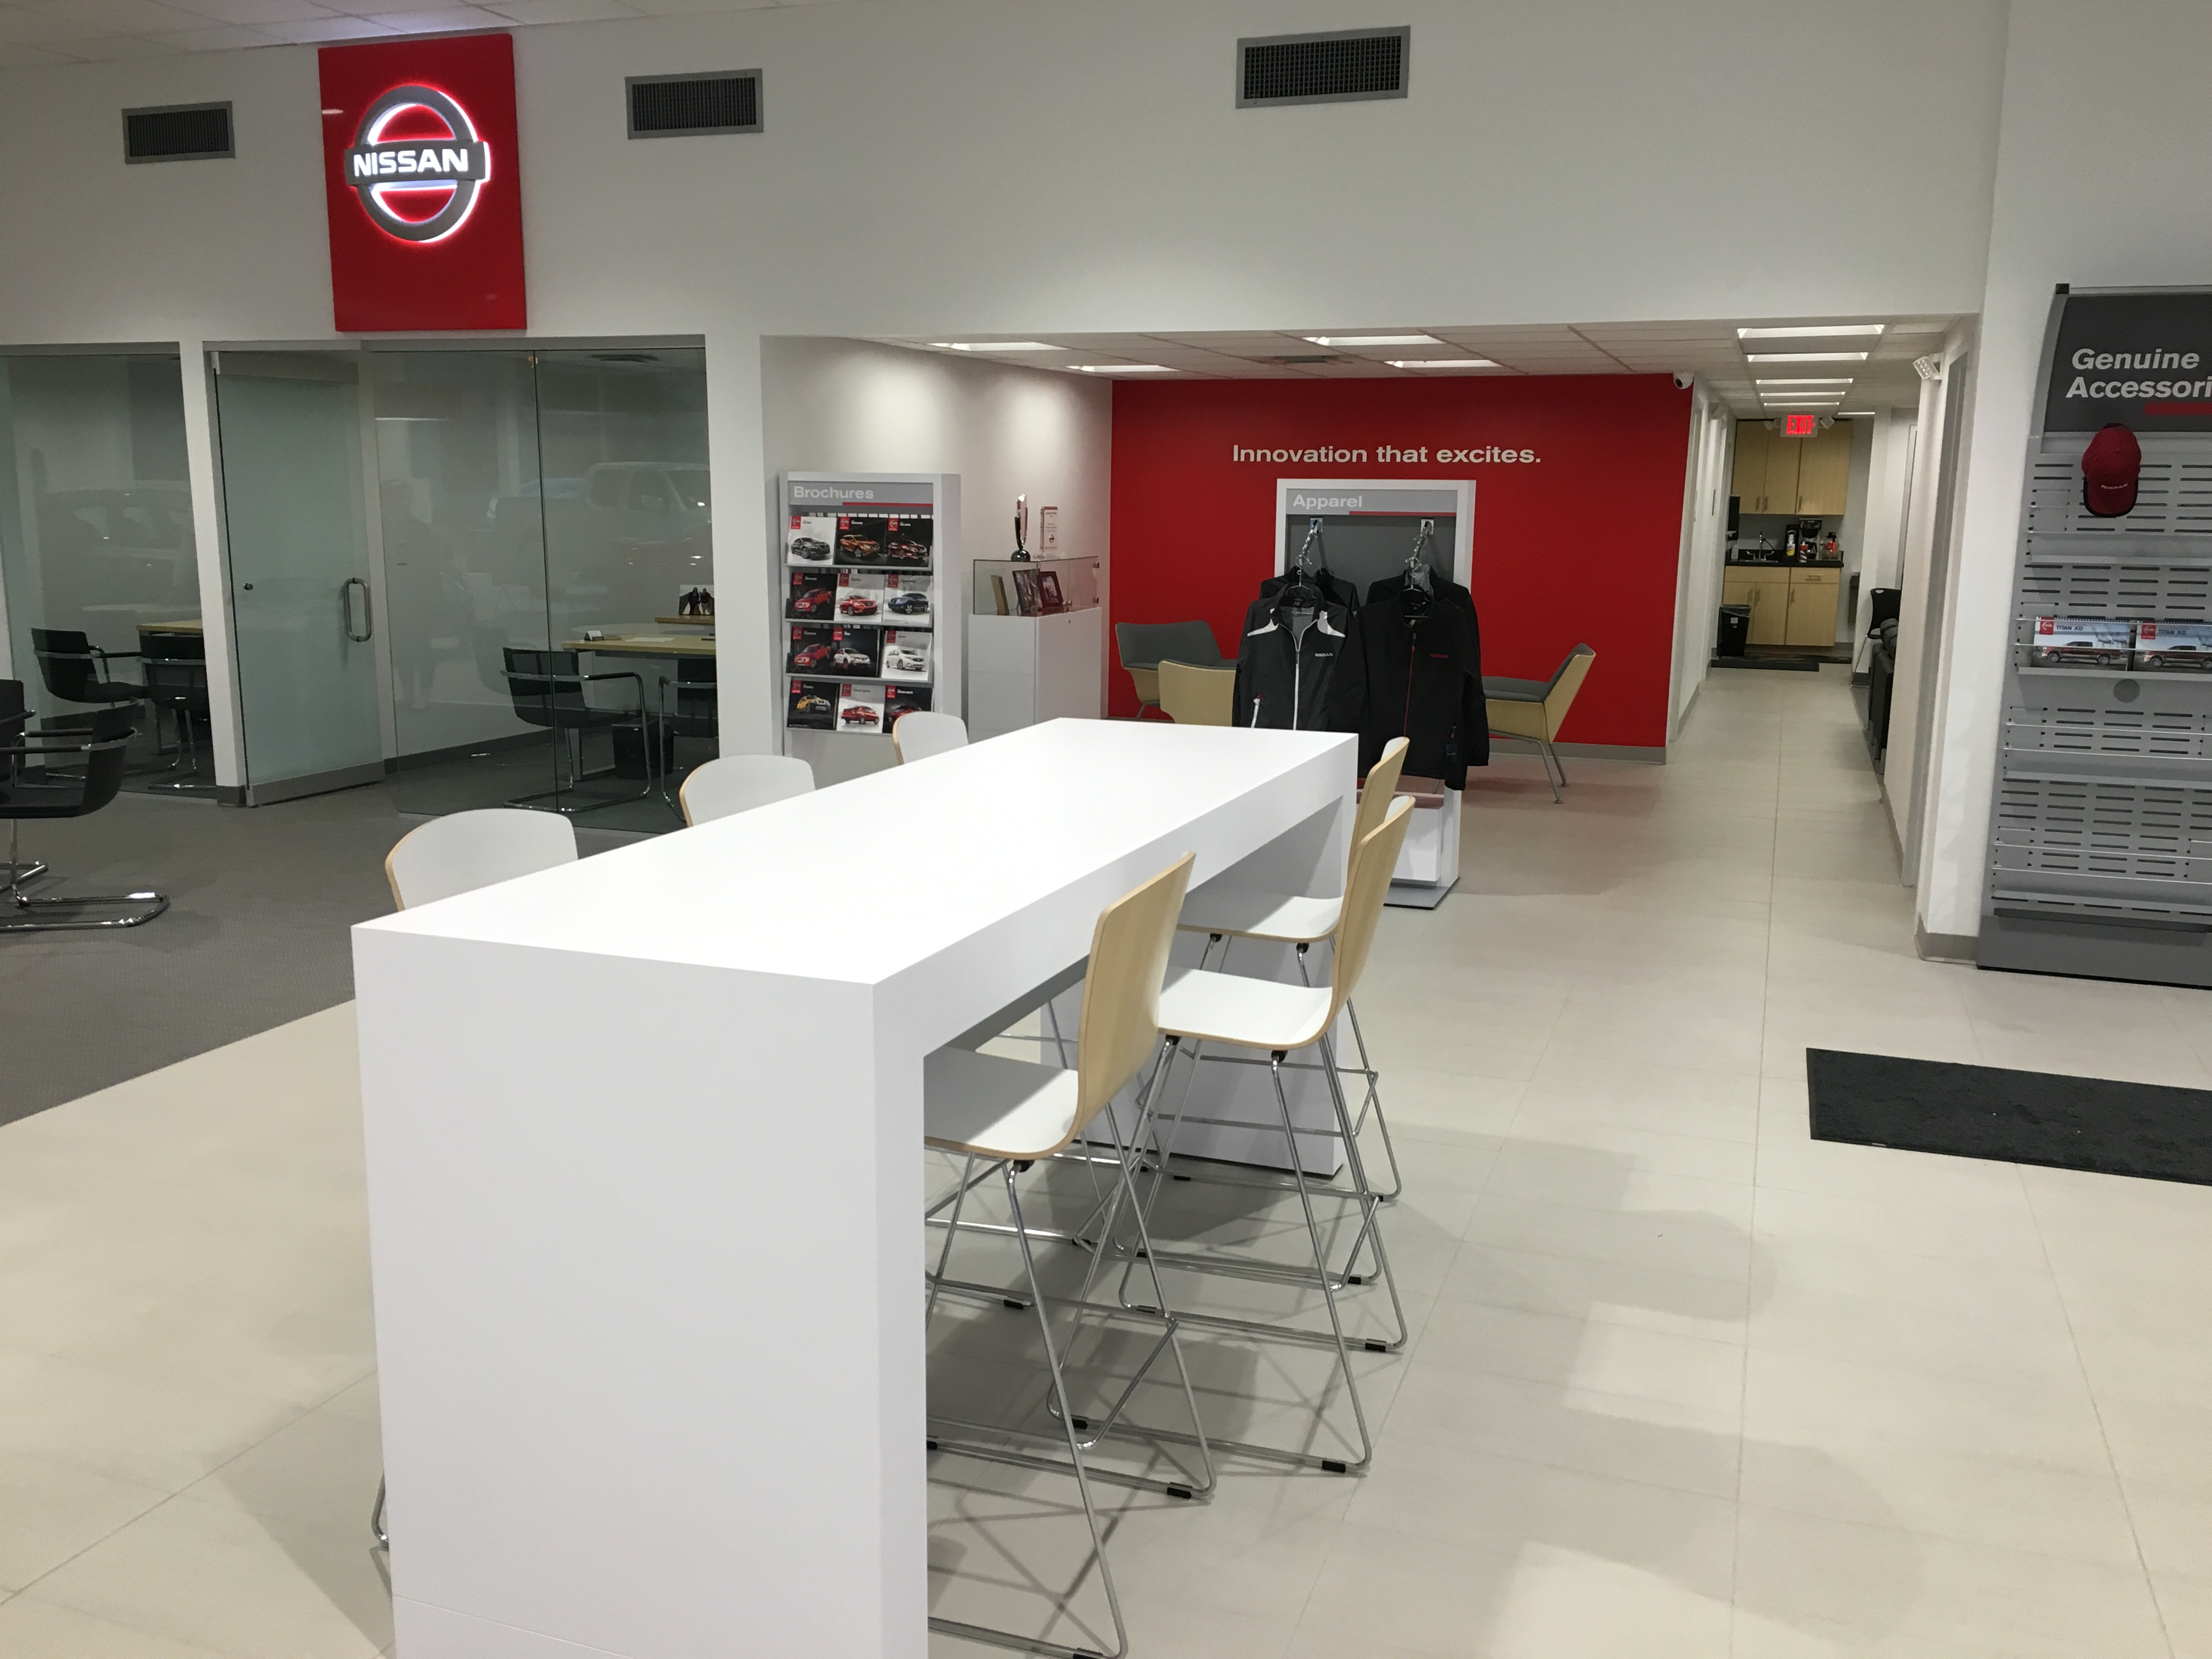 Simmons Nissan, Mount Airy NC